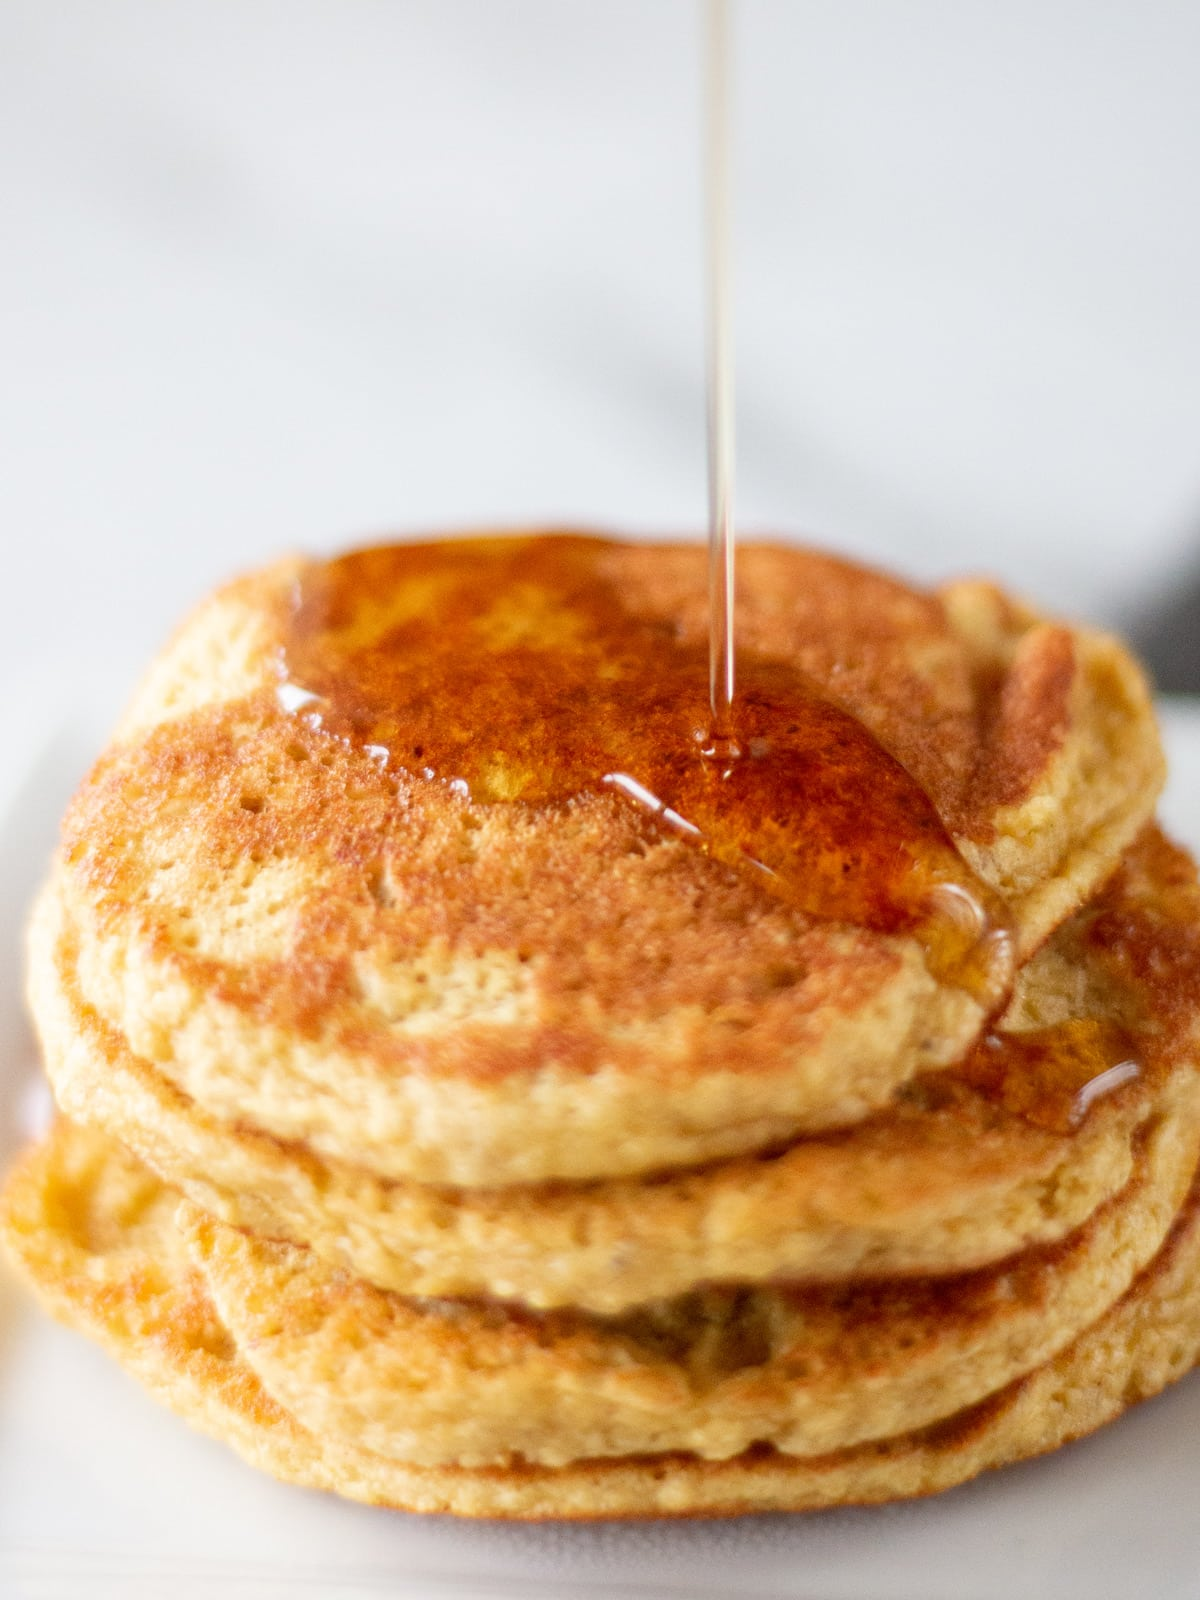 syrup pouring on pancakes